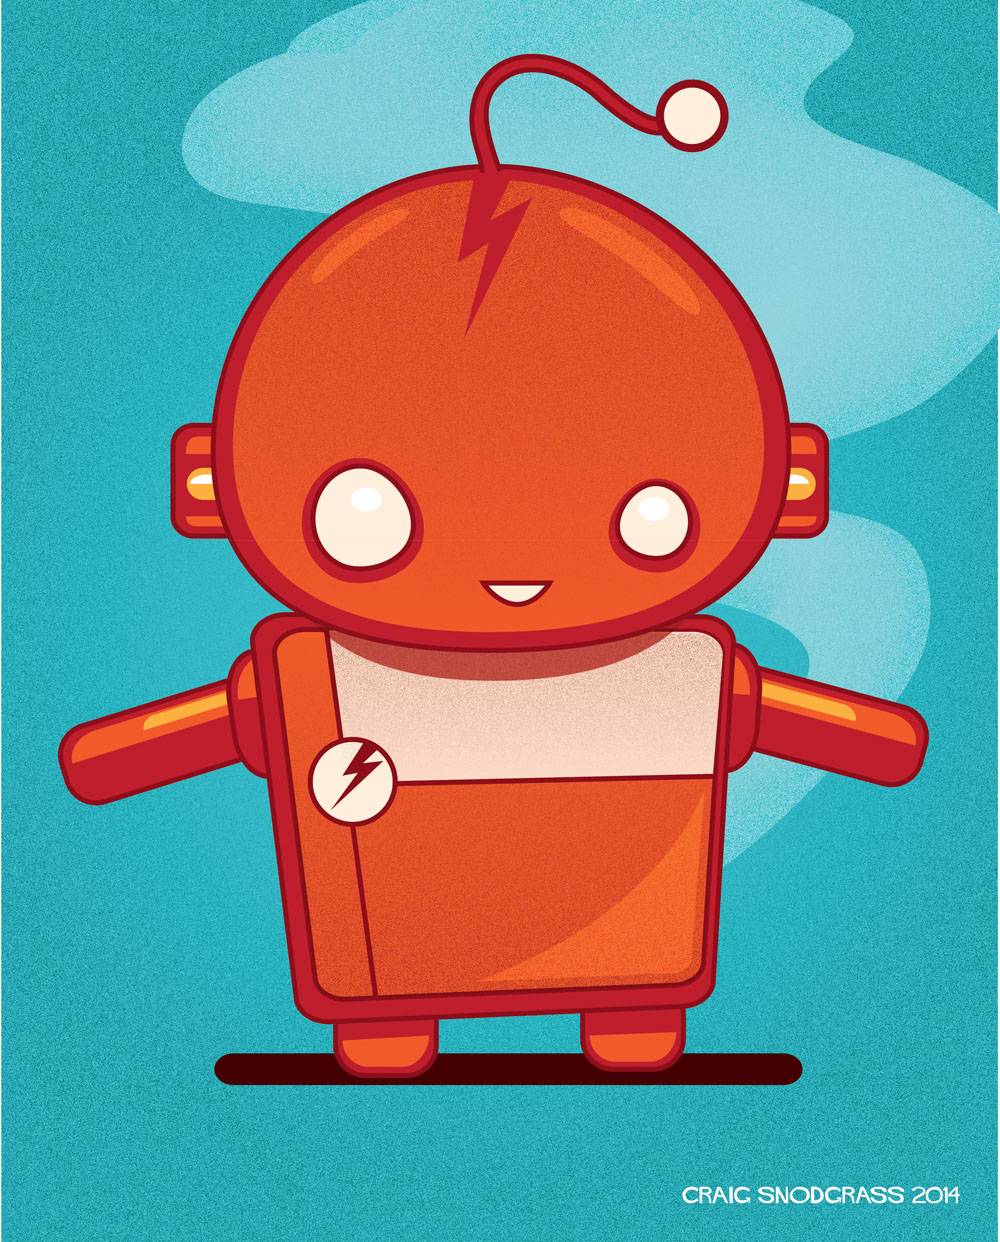 orange-bot-vector-8x10.jpg